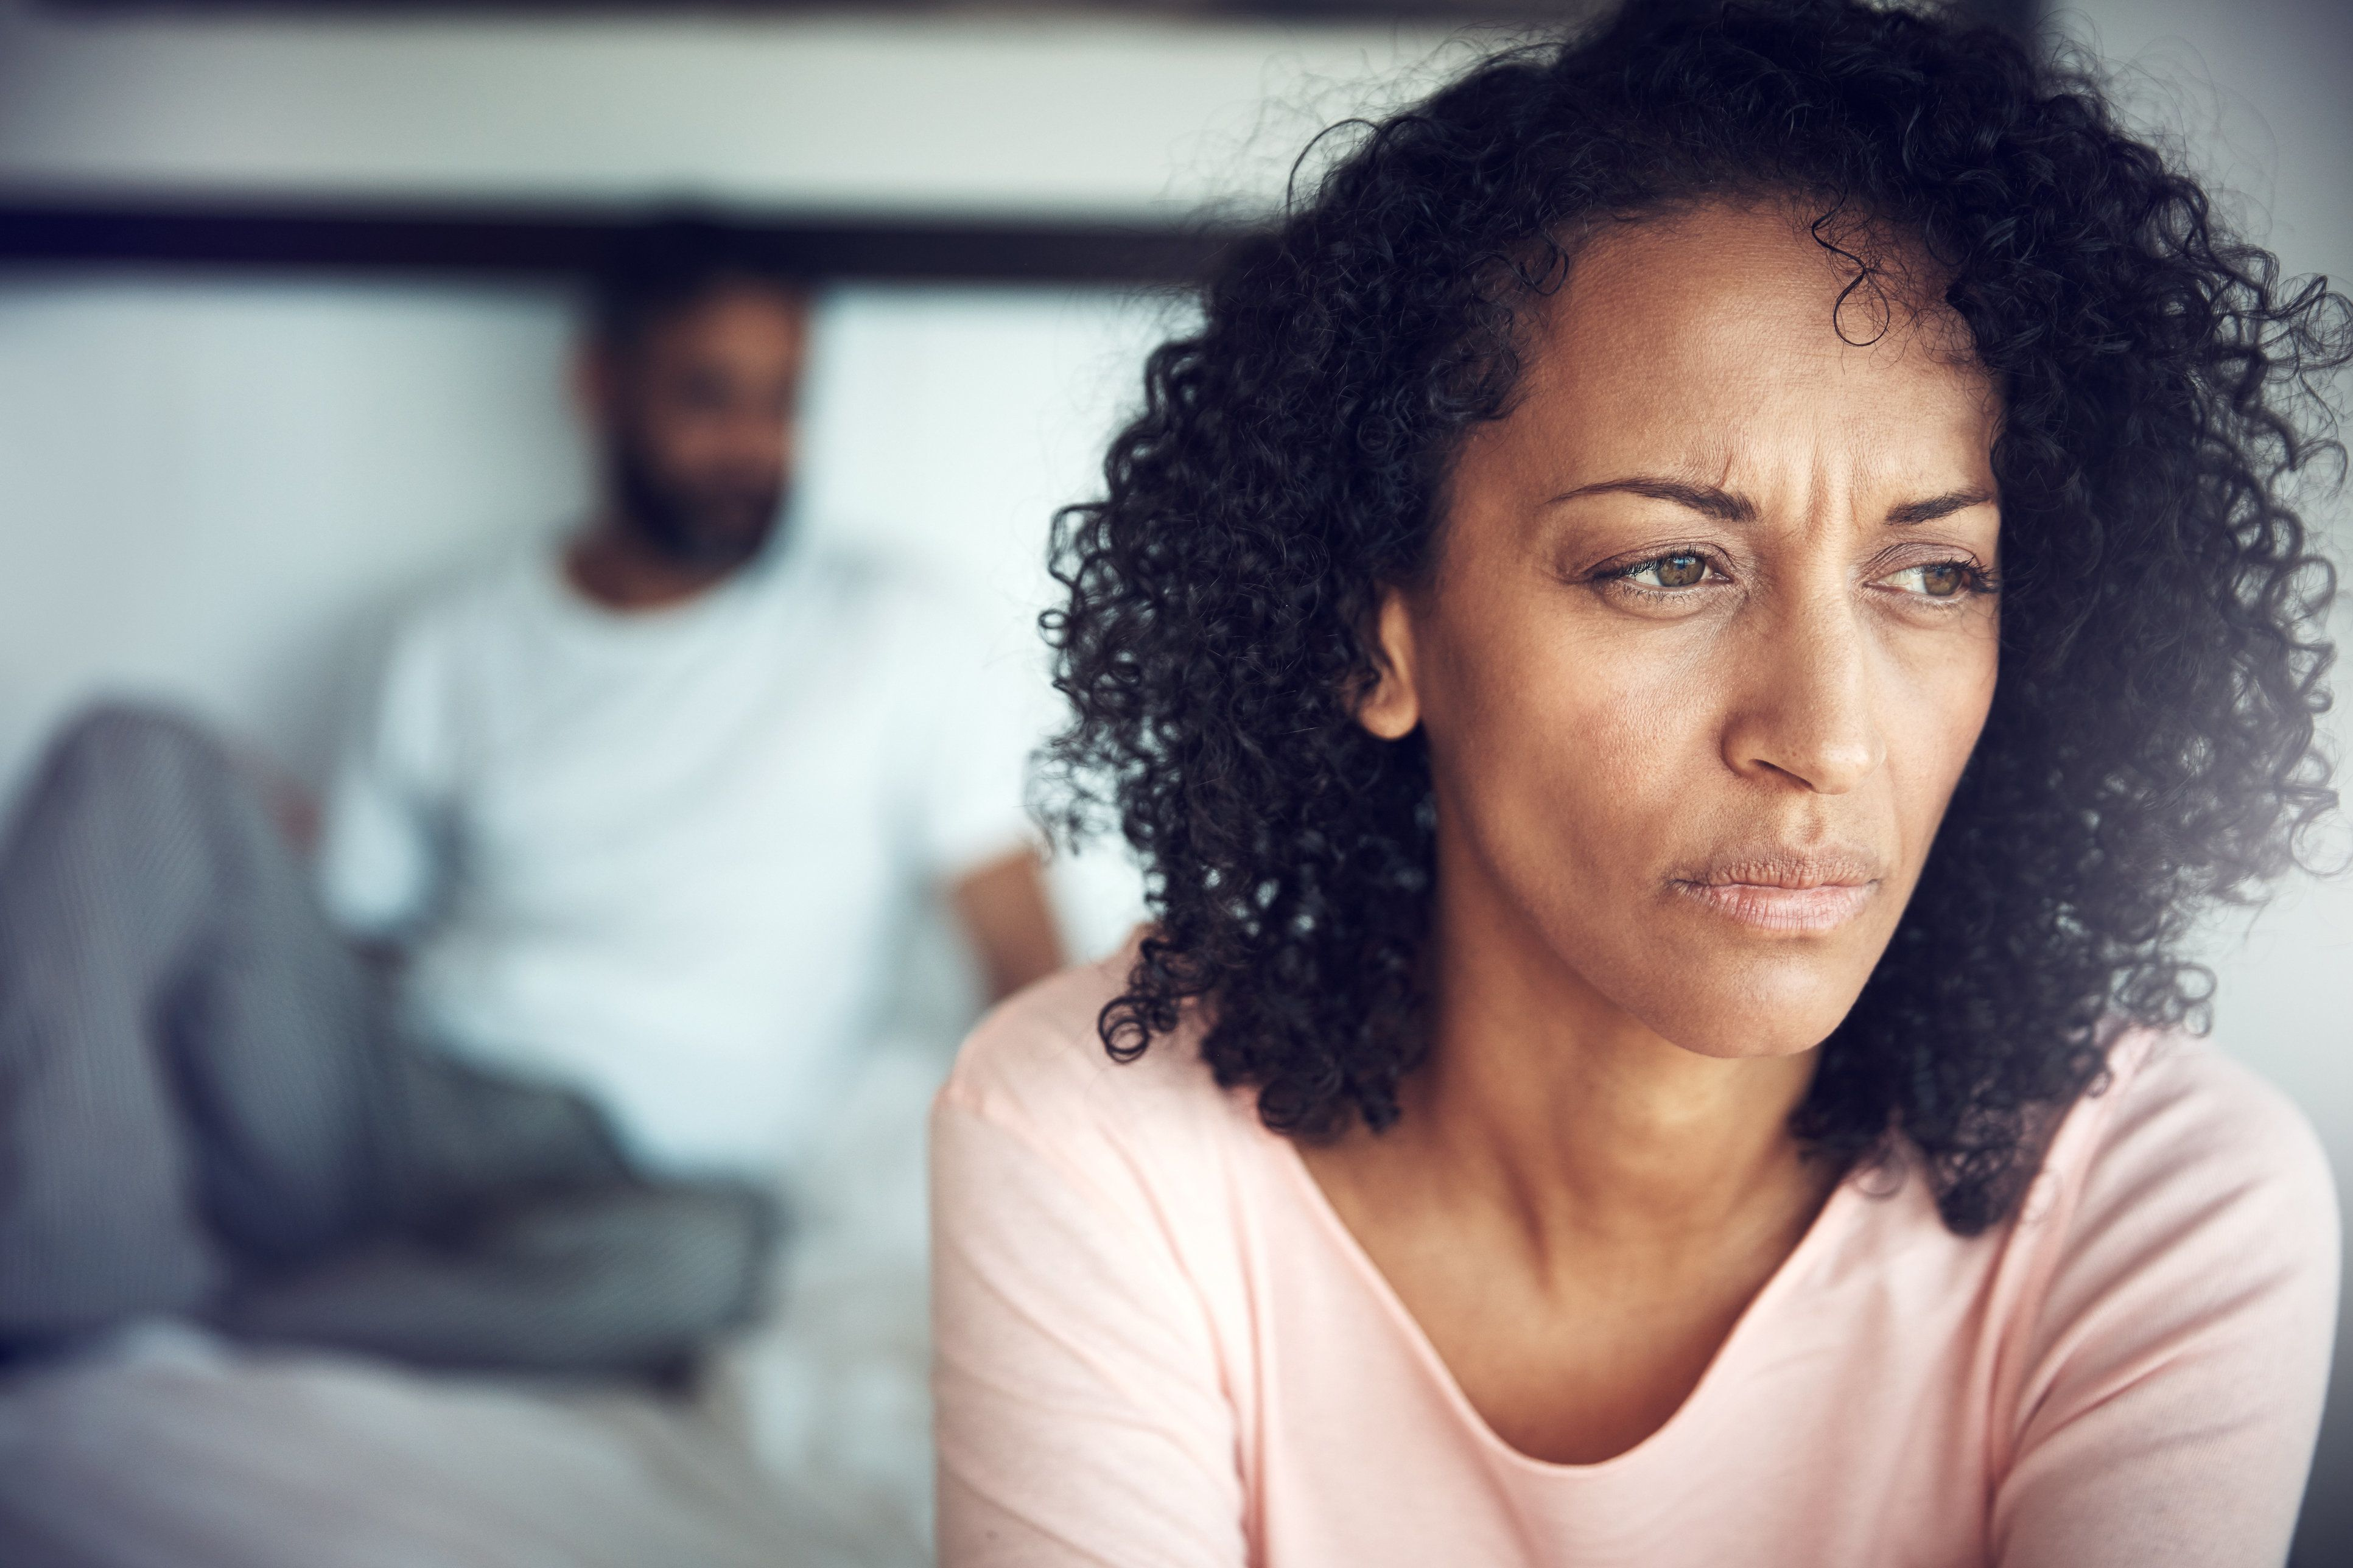 Shot of a mature woman looking upset with her husband in the background